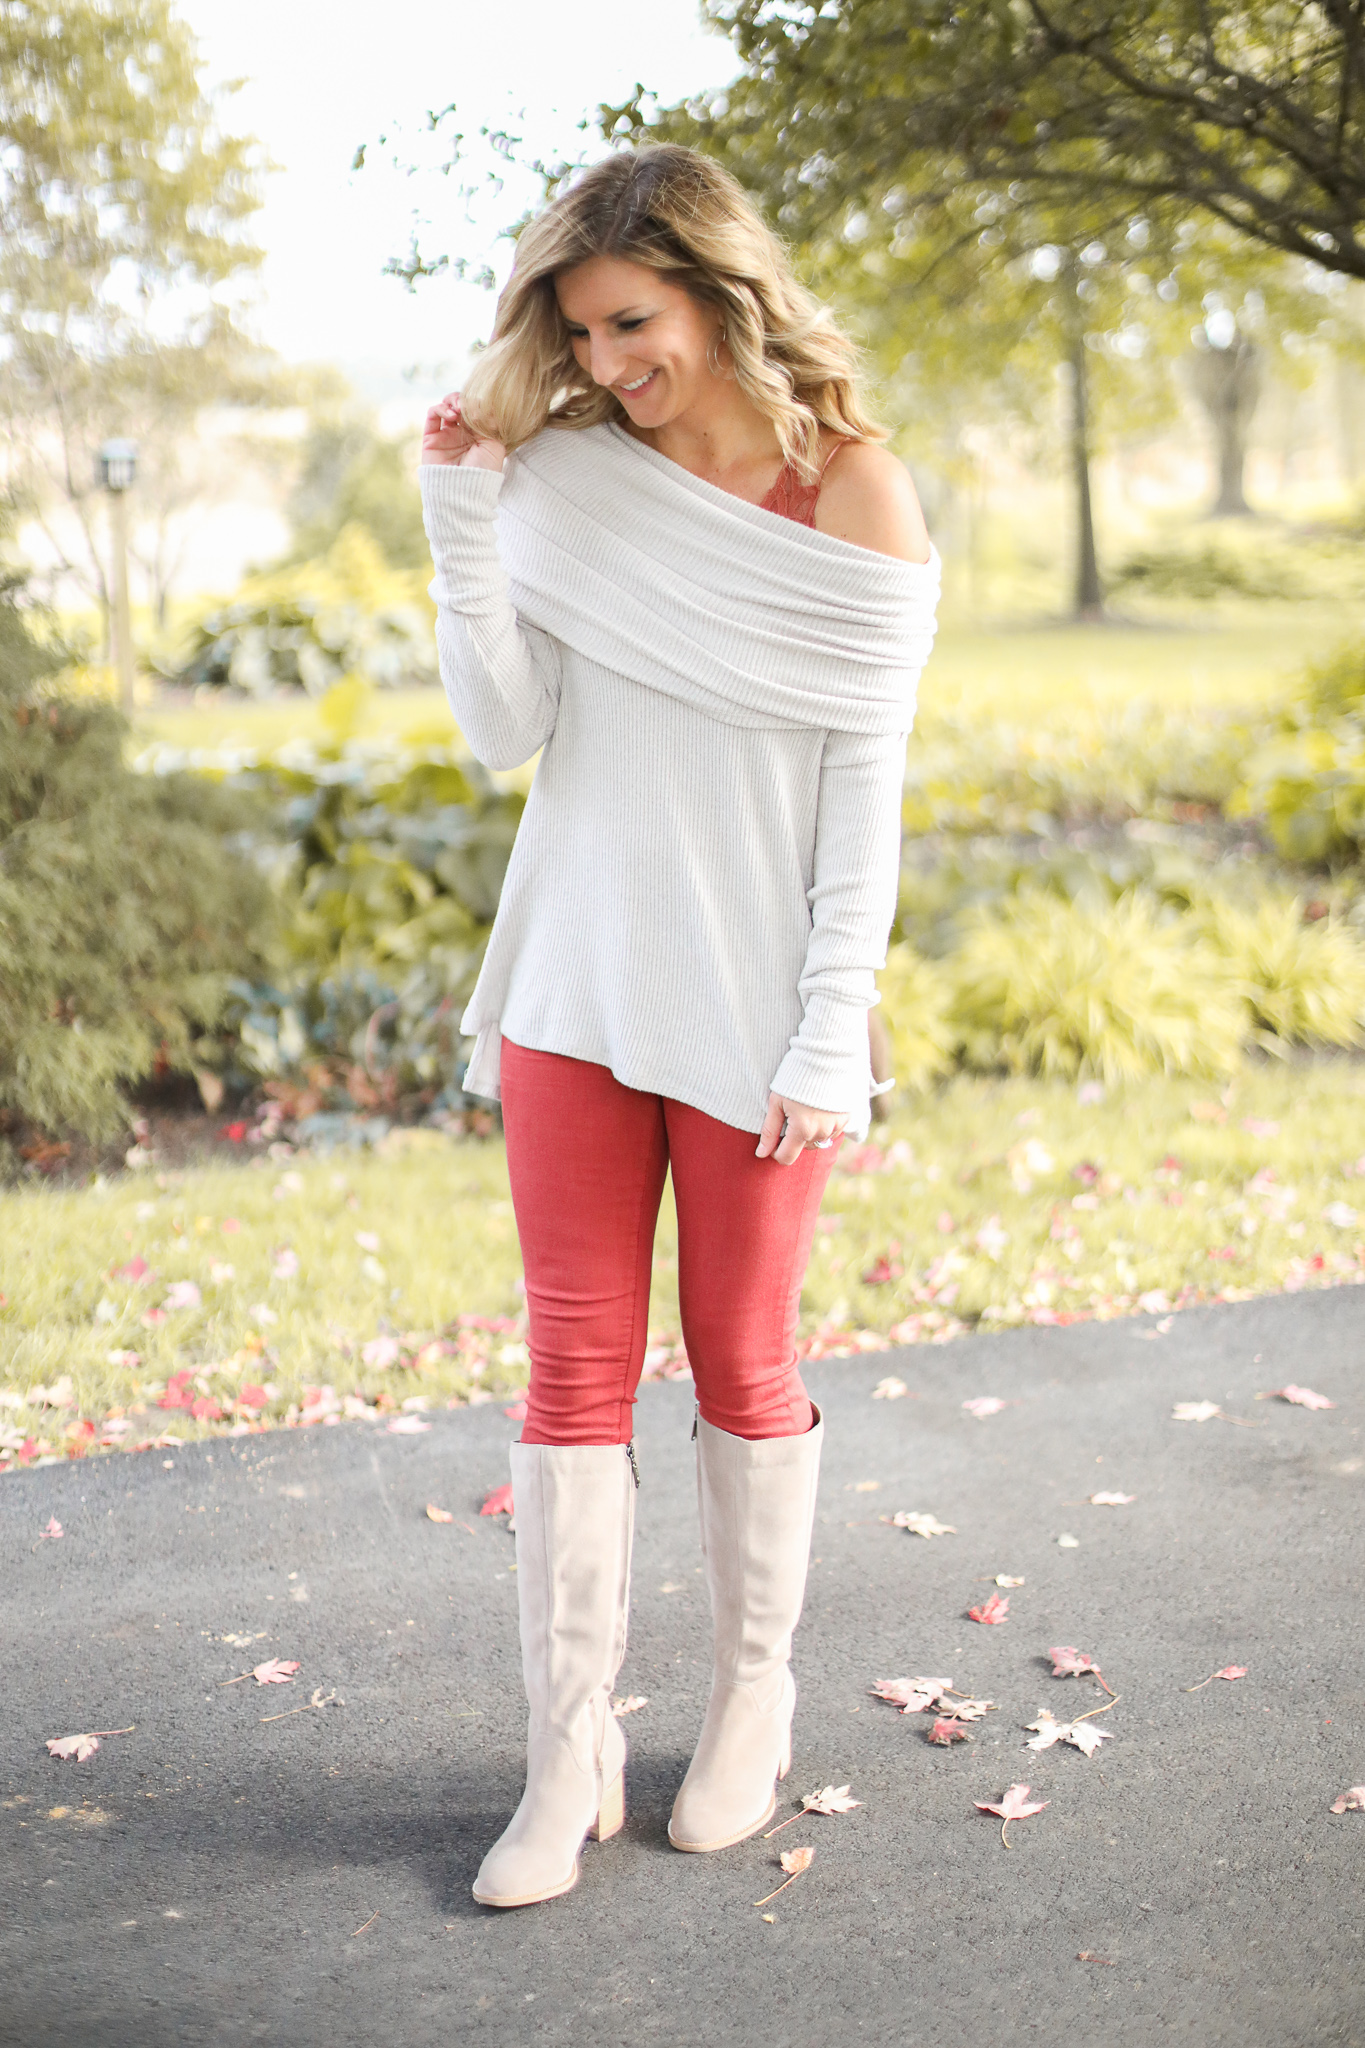 871805f18f2a3e Our Audrey Ribbed Convertible Tunic is collectively the LIY Team s top pick  in this collection  and for good reason . Not only is the material beyond  soft ...